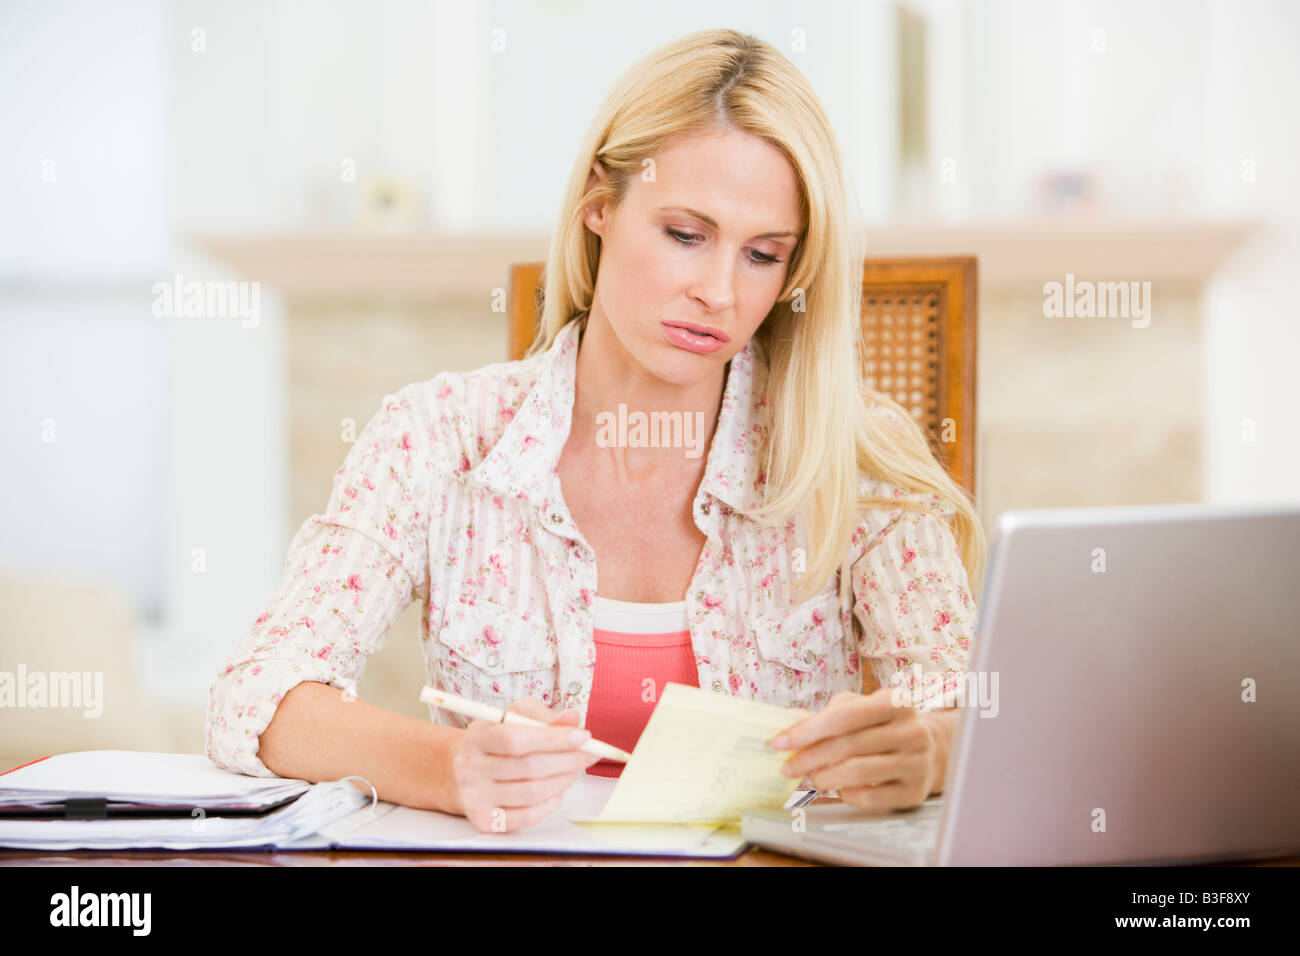 Woman in dining room with laptop smiling - Stock Image